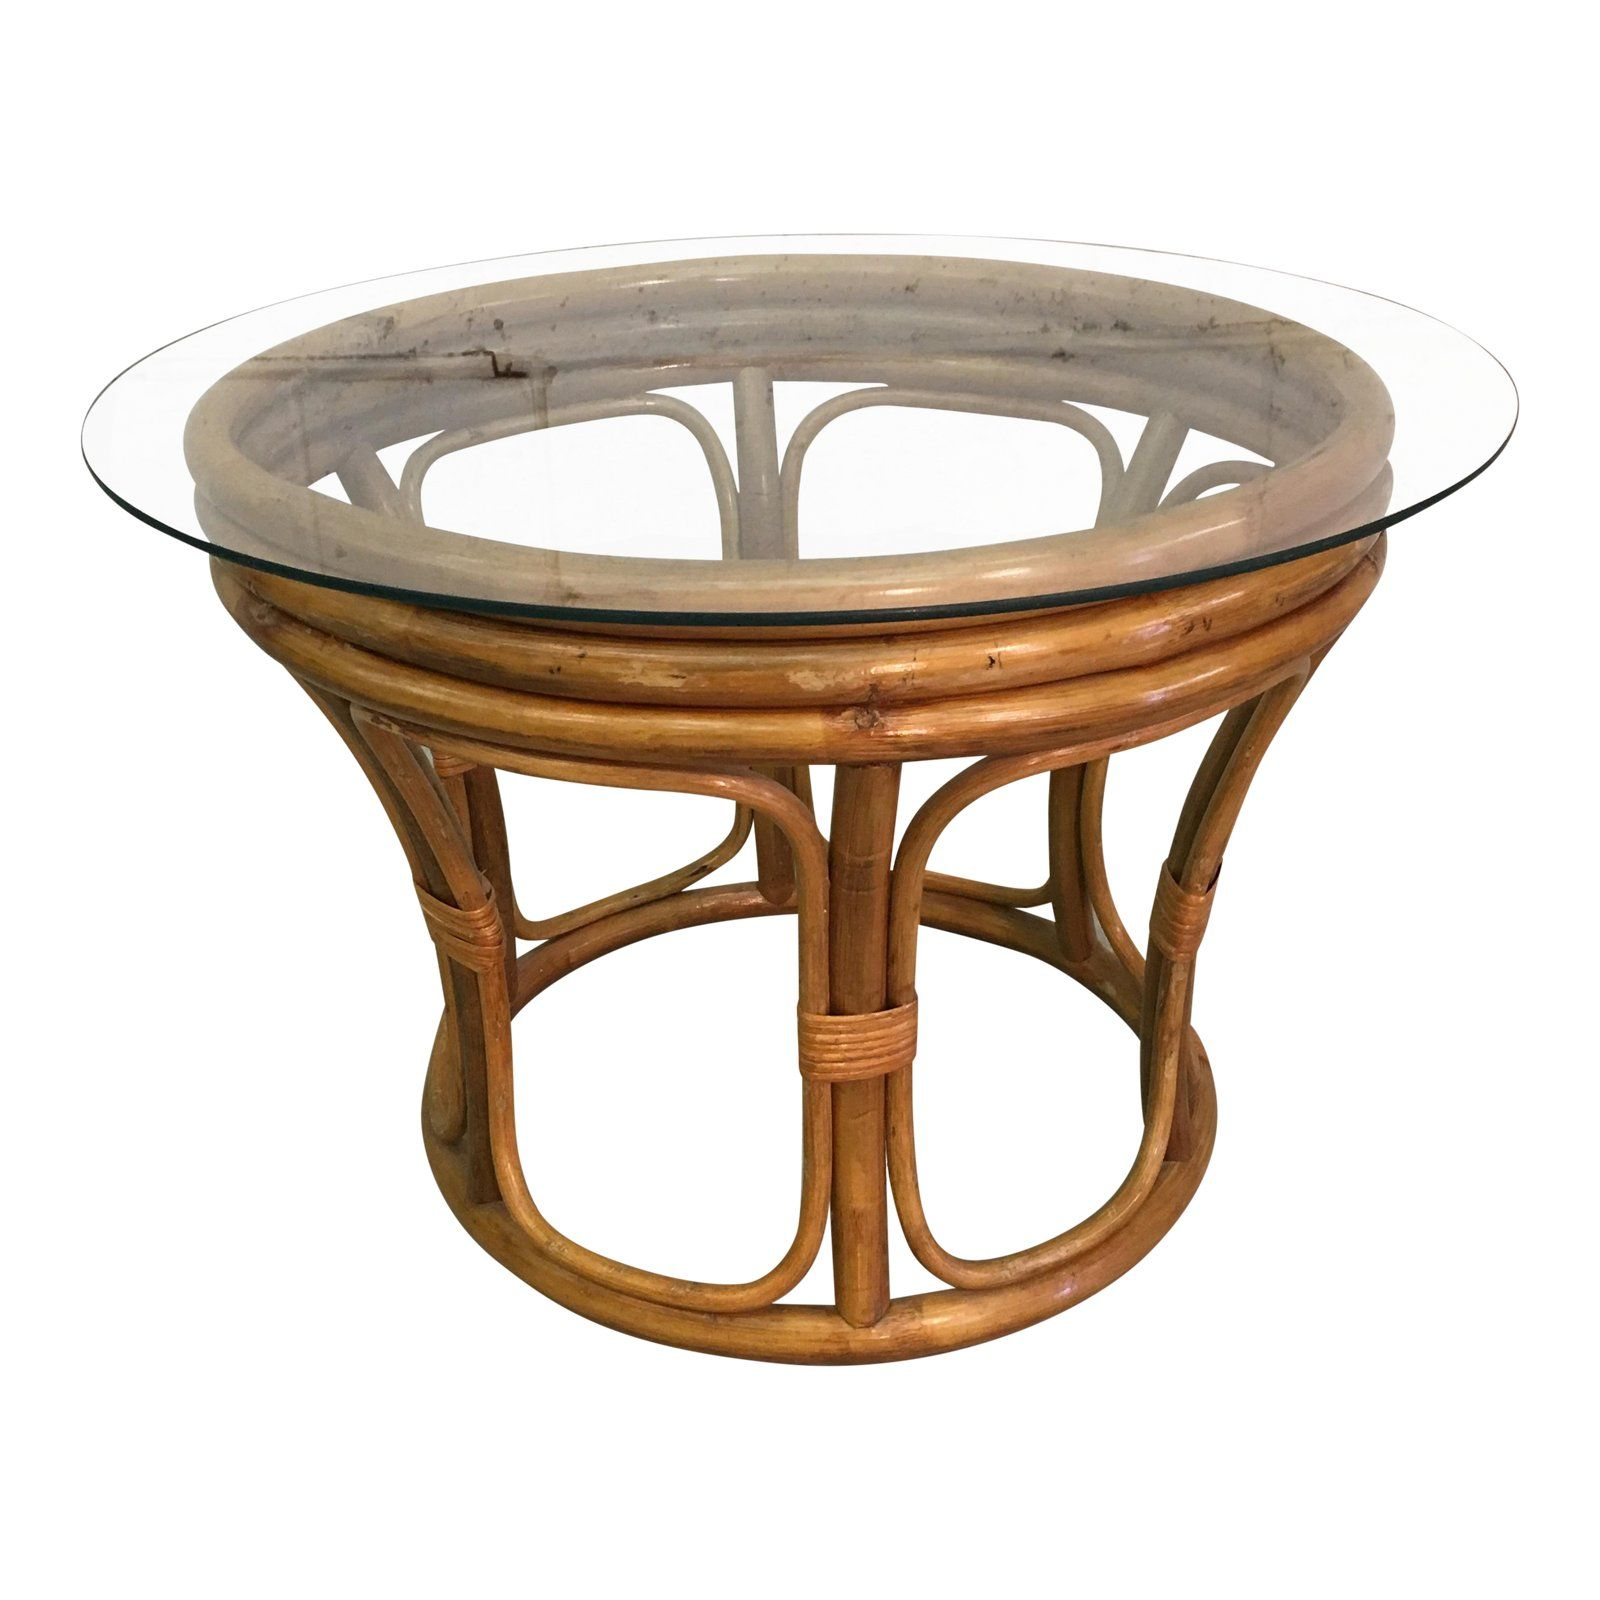 Vintage 1960s Round Glass Top And Rattan Coffee Table Base Is 24 W X 18 5 H Glass Has So Round Glass Coffee Table Minimalist Coffee Table Coffee Table X Base [ 1600 x 1600 Pixel ]